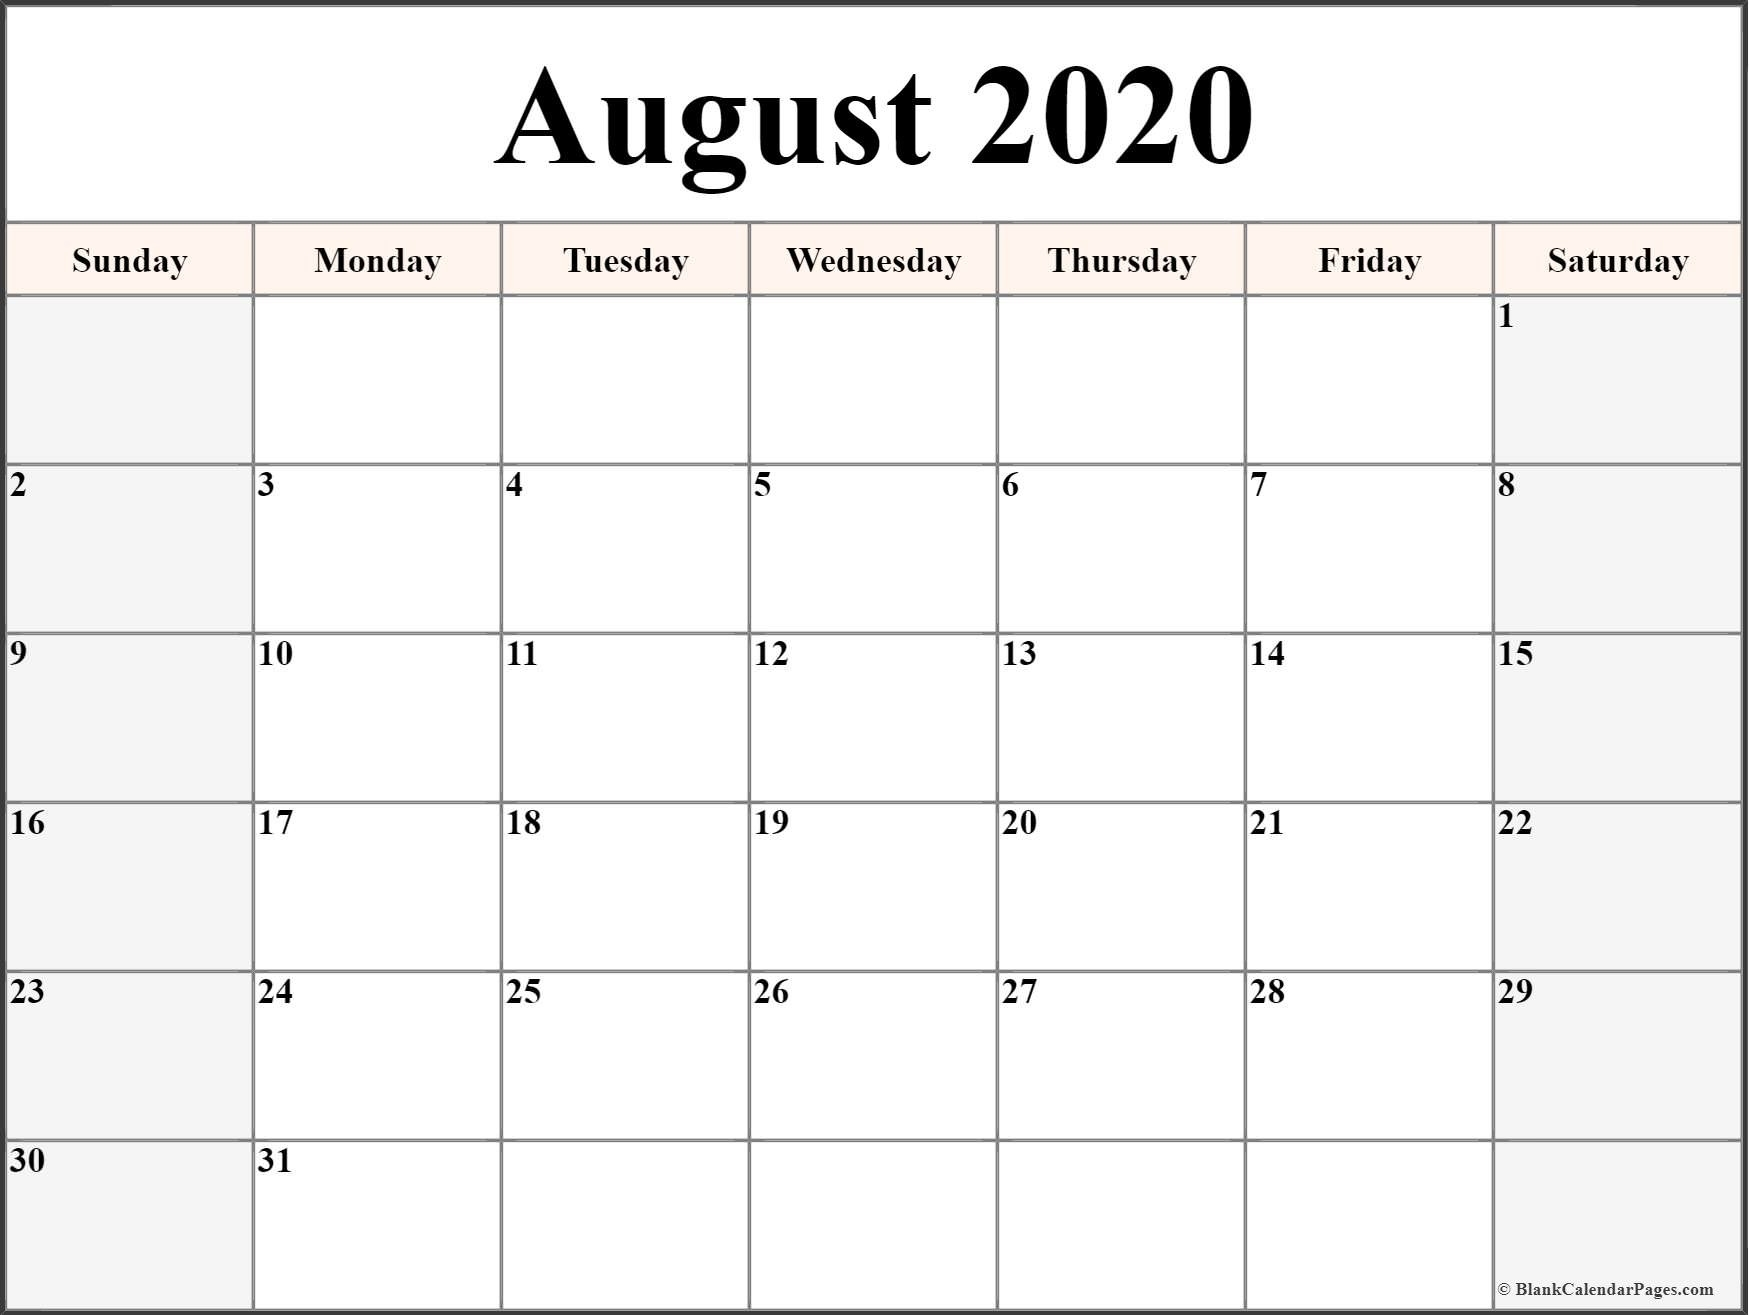 August 2020 Calendar | Free Printable Monthly Calendars-Printable Monthly Calendar July August 2020